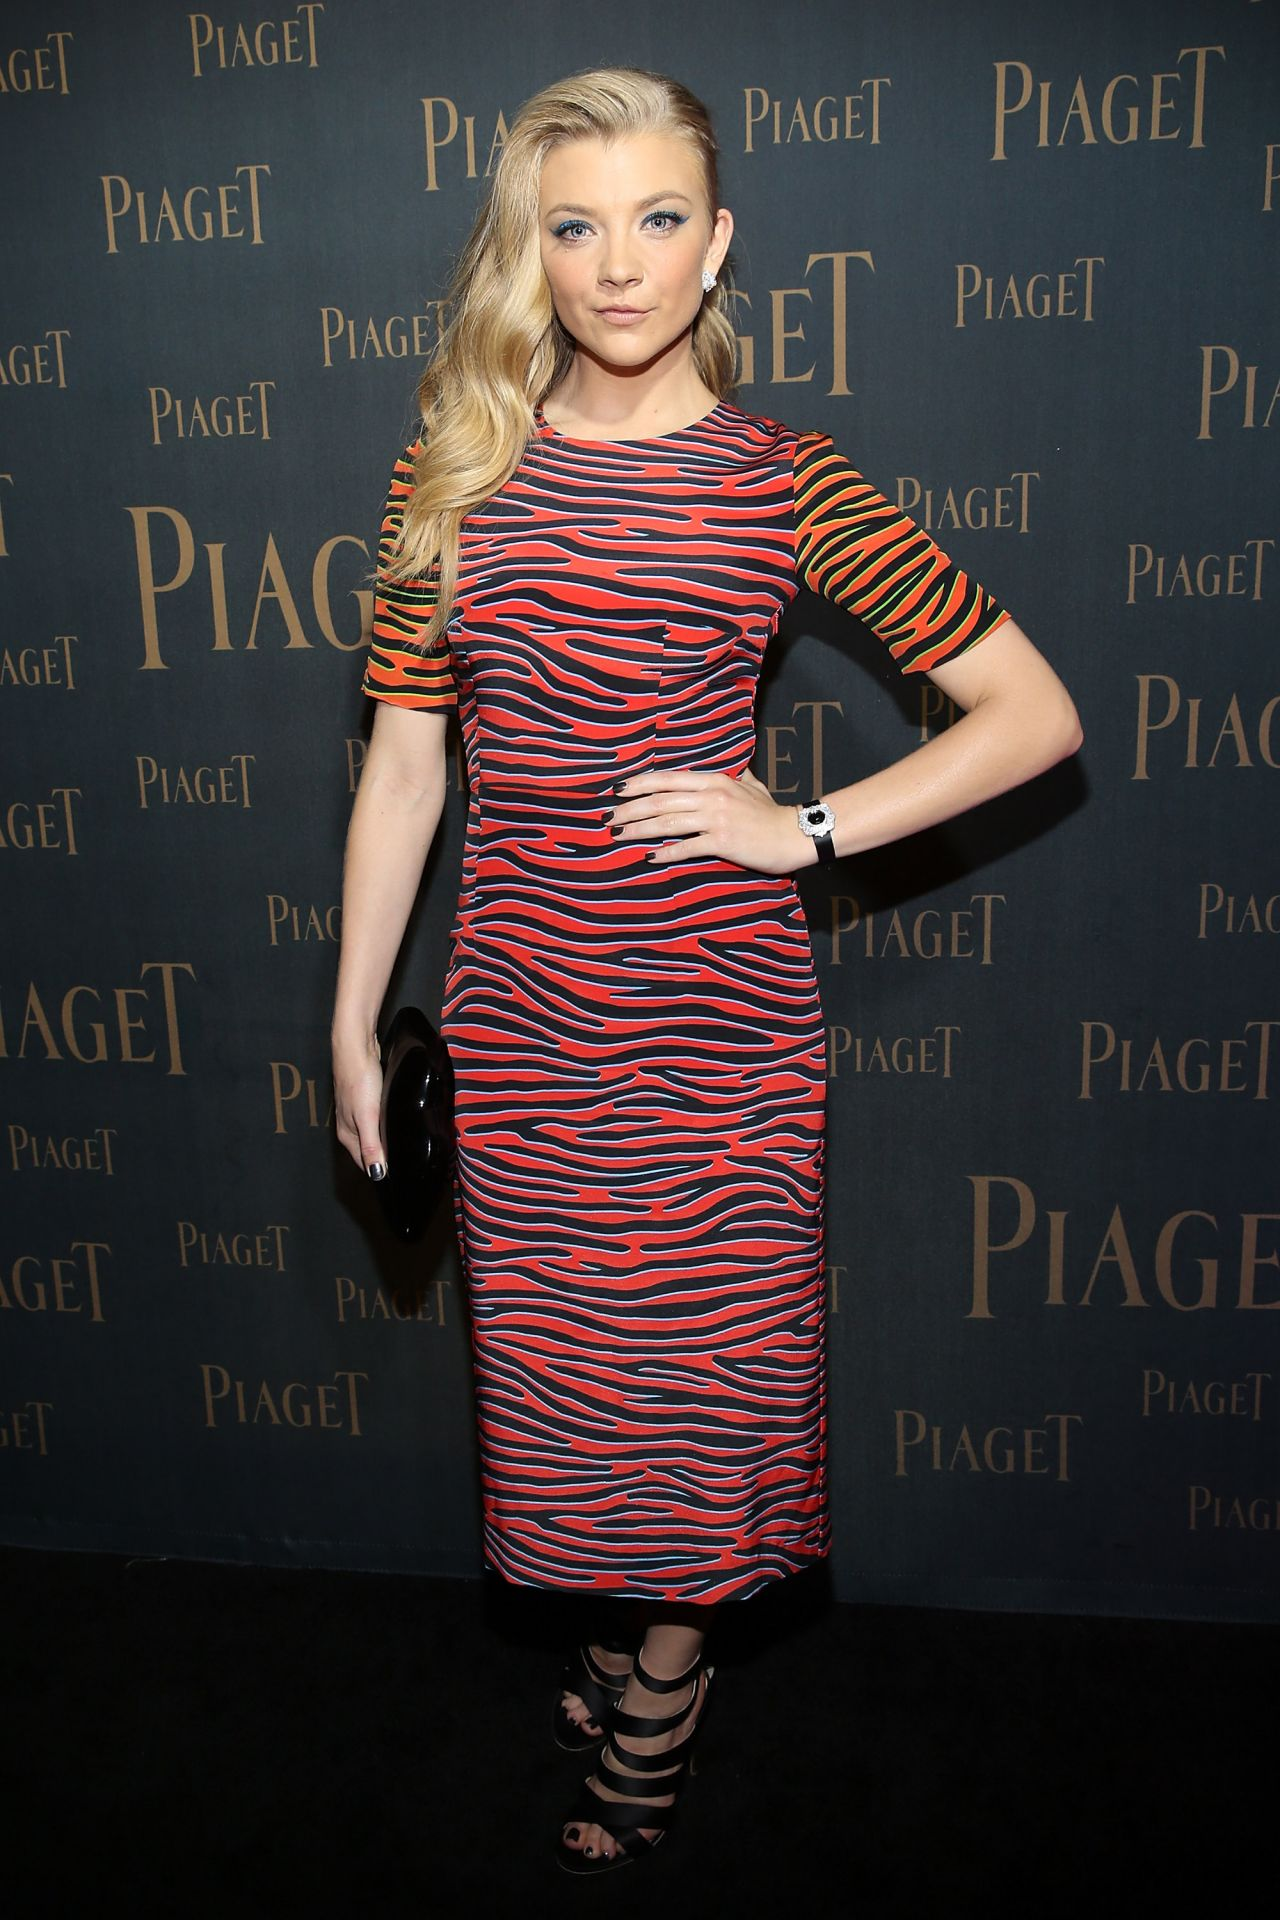 natalie-dormer-extremely-piaget-launch-event-in-beverly-hills-october-2014_2